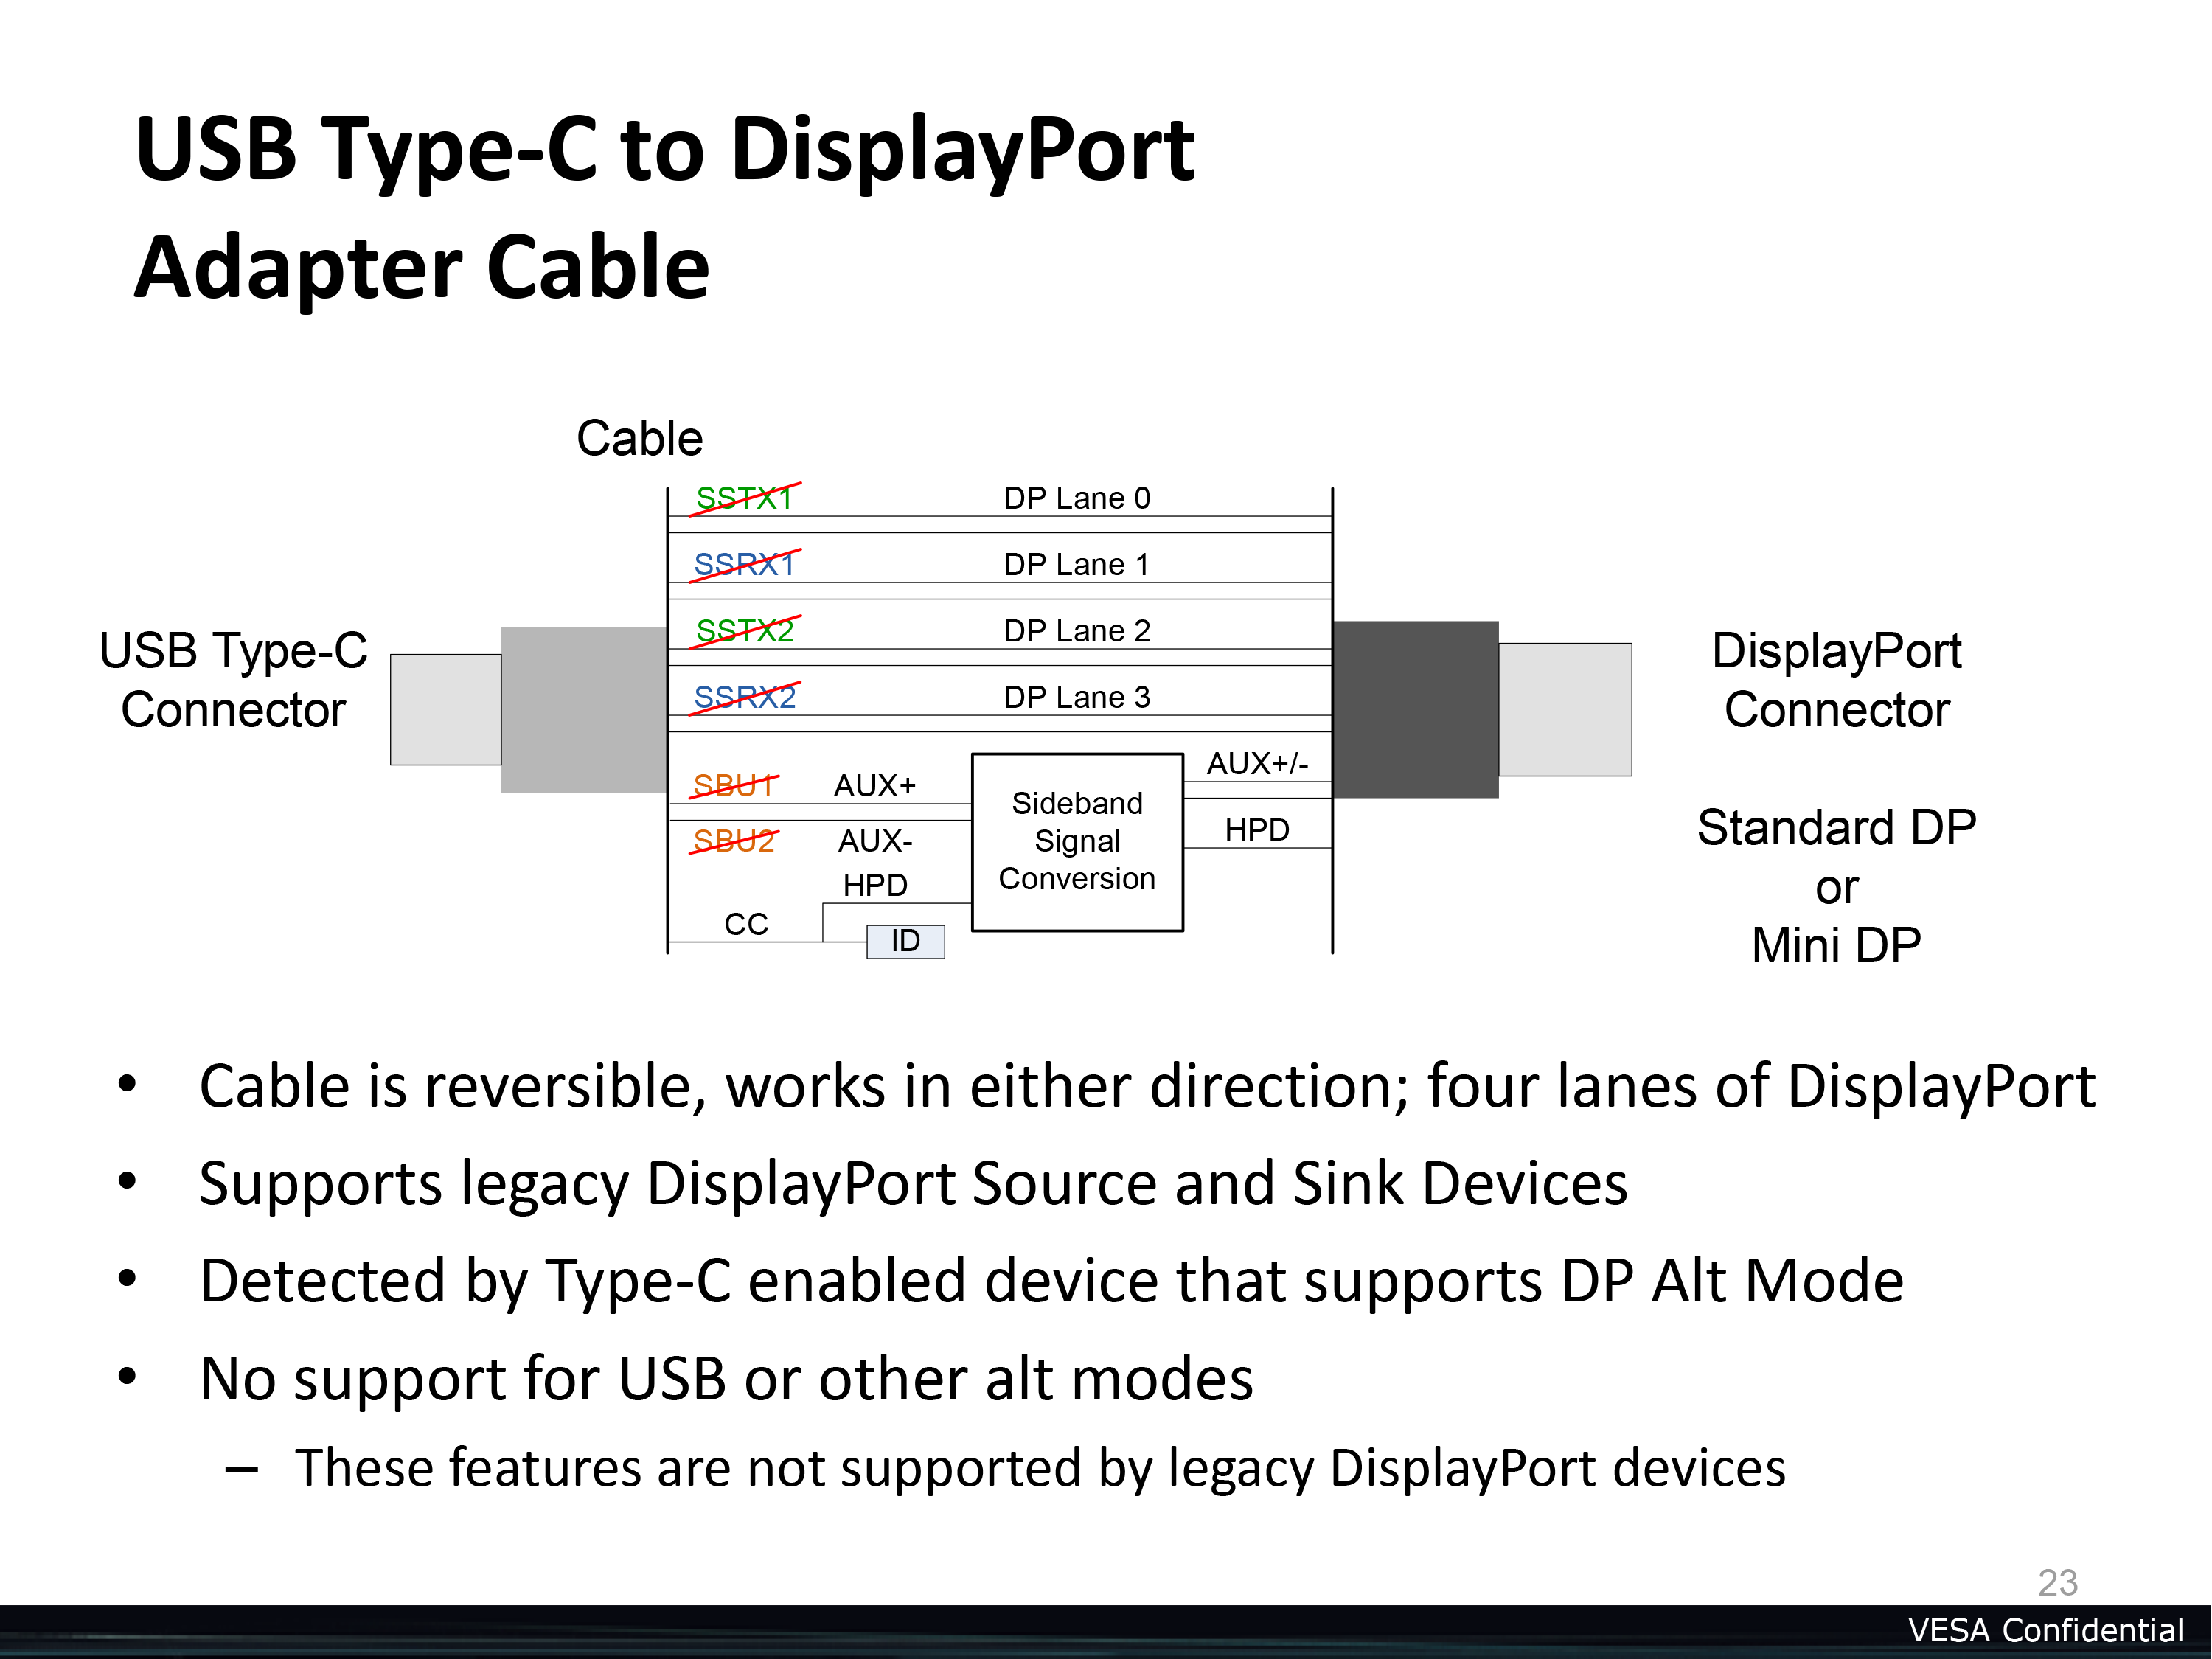 displayport alternate mode for usb type c announced video power rh anandtech com Ethernet Cable Wiring Diagram Cat5e Cable Wiring Diagram